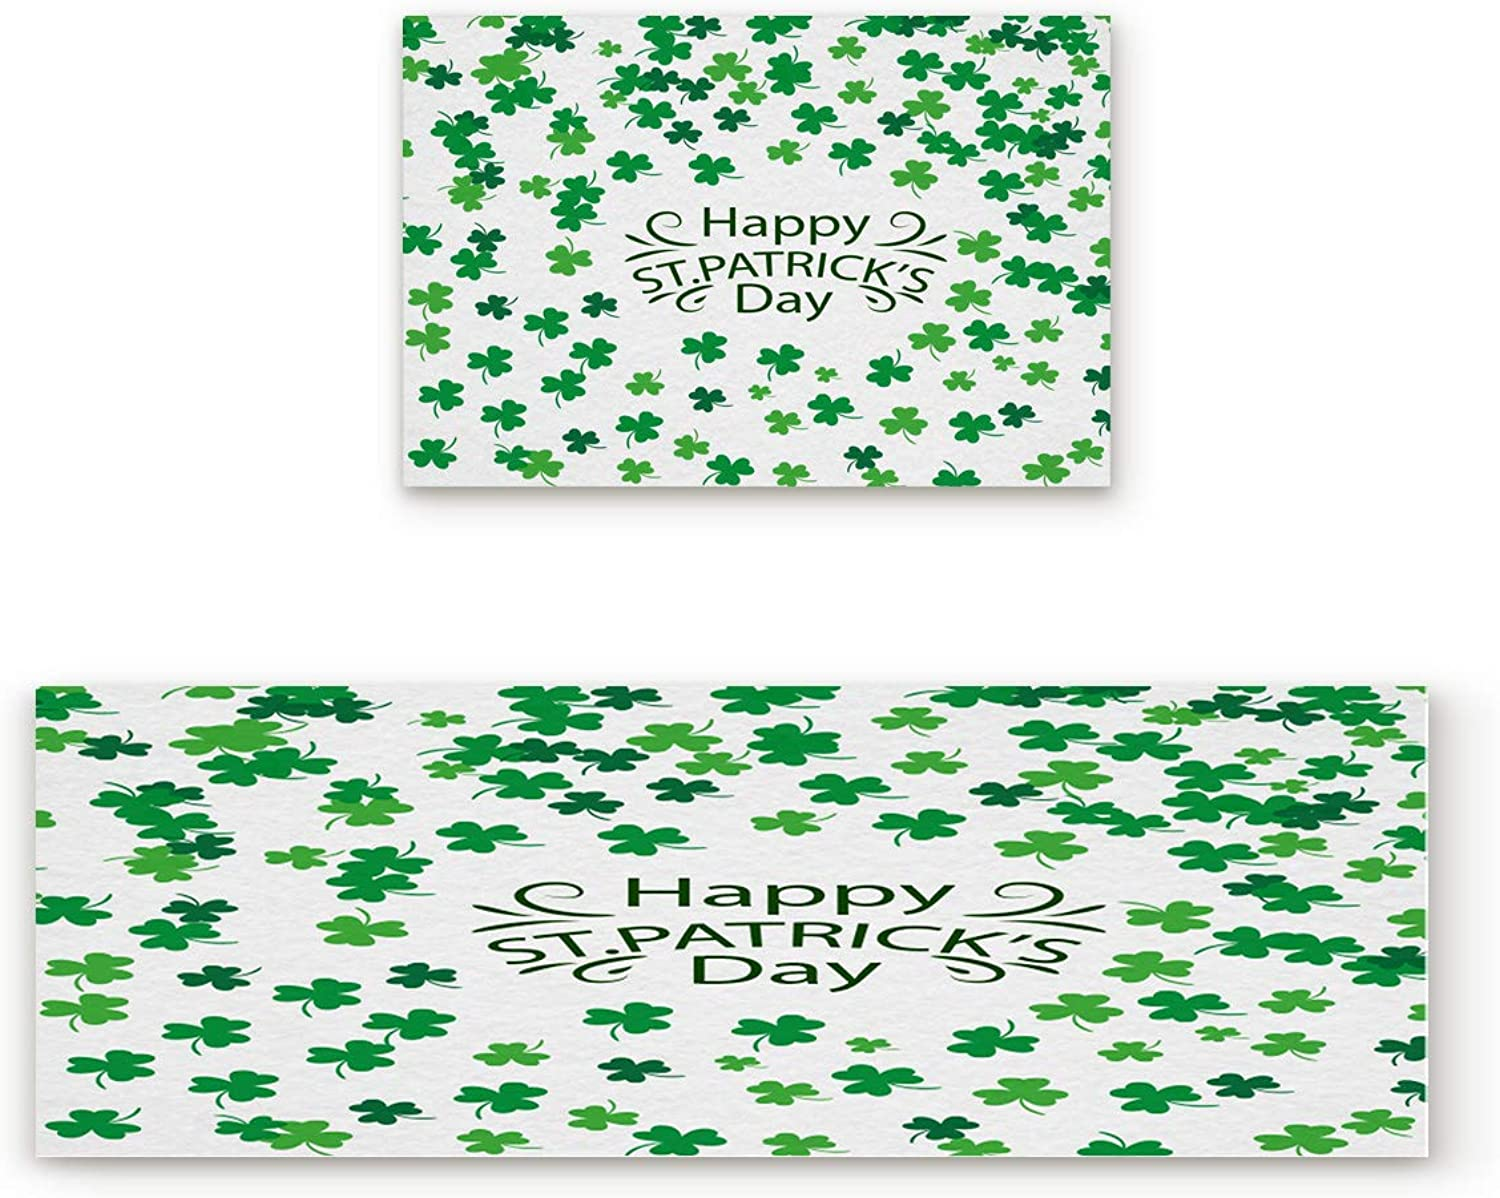 Aomike 2 Piece Non-Slip Kitchen Mat Rubber Backing Doormat Happy St Patrick's Day Simple Shamrock Pattern Runner Rug Set, Hallway Living Room Balcony Bathroom Carpet Sets (19.7  x 31.5 +19.7  x 63 )